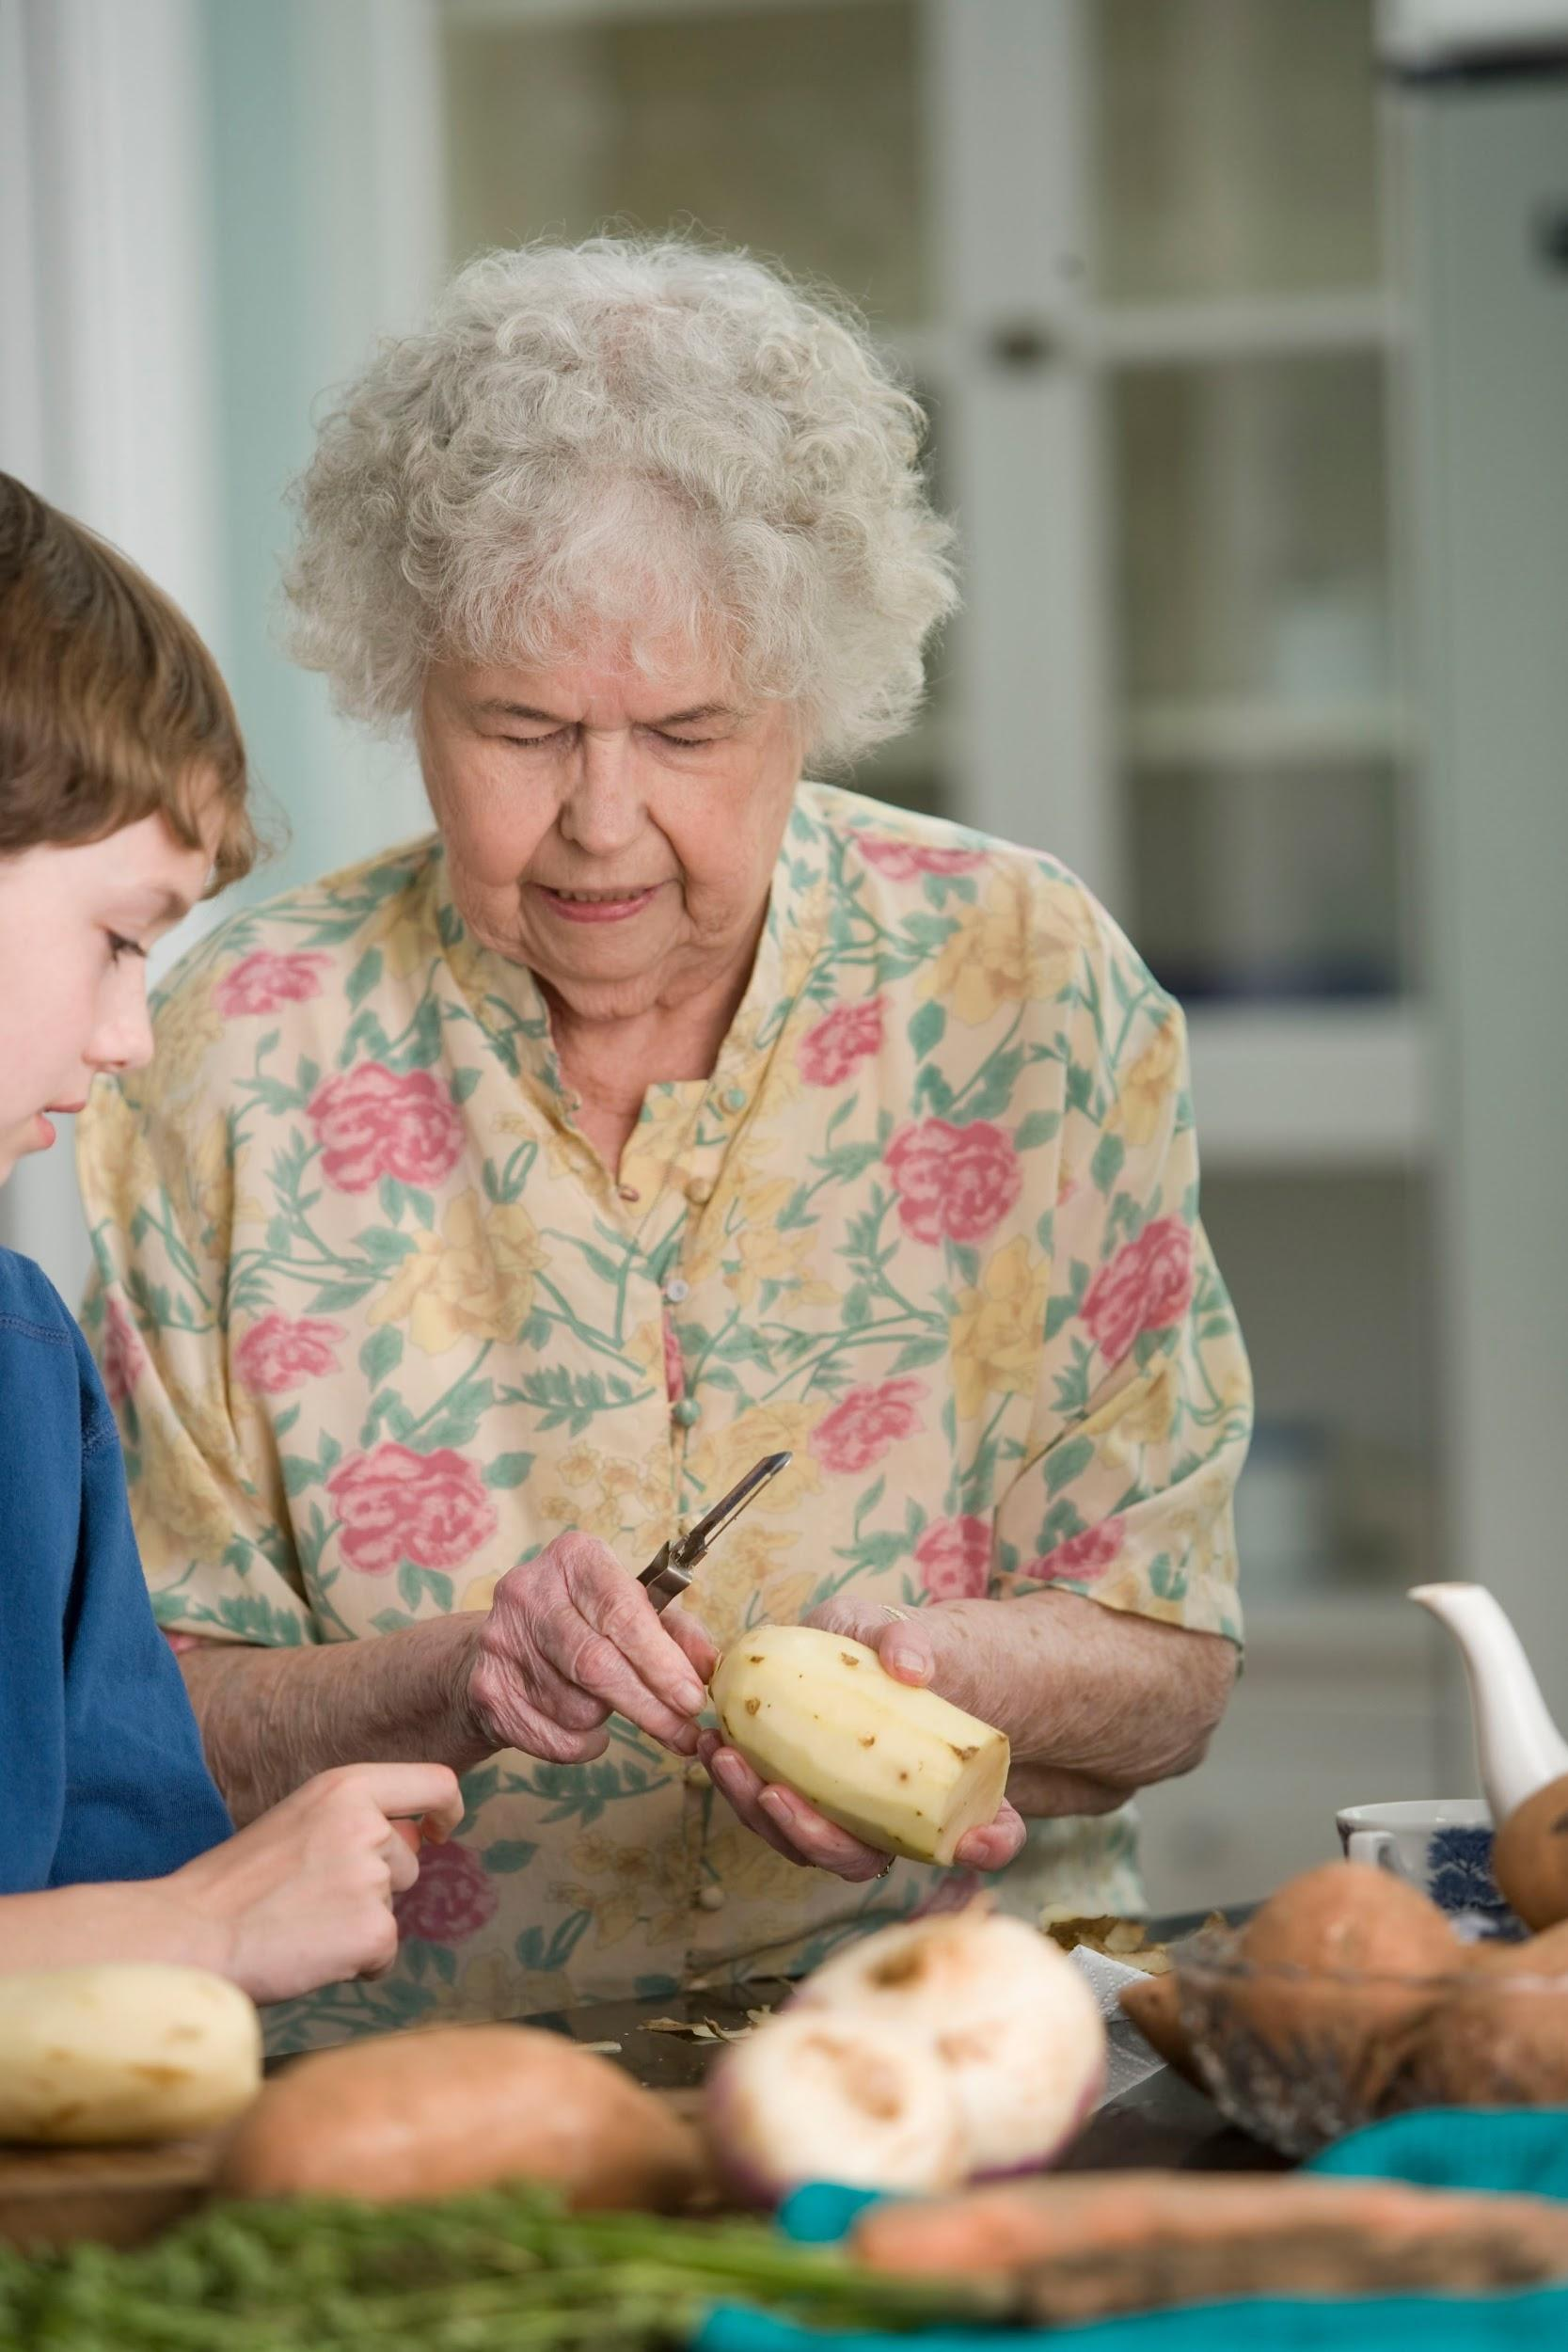 An older woman is peeling potatoes in the kitchen with a male adolescent.